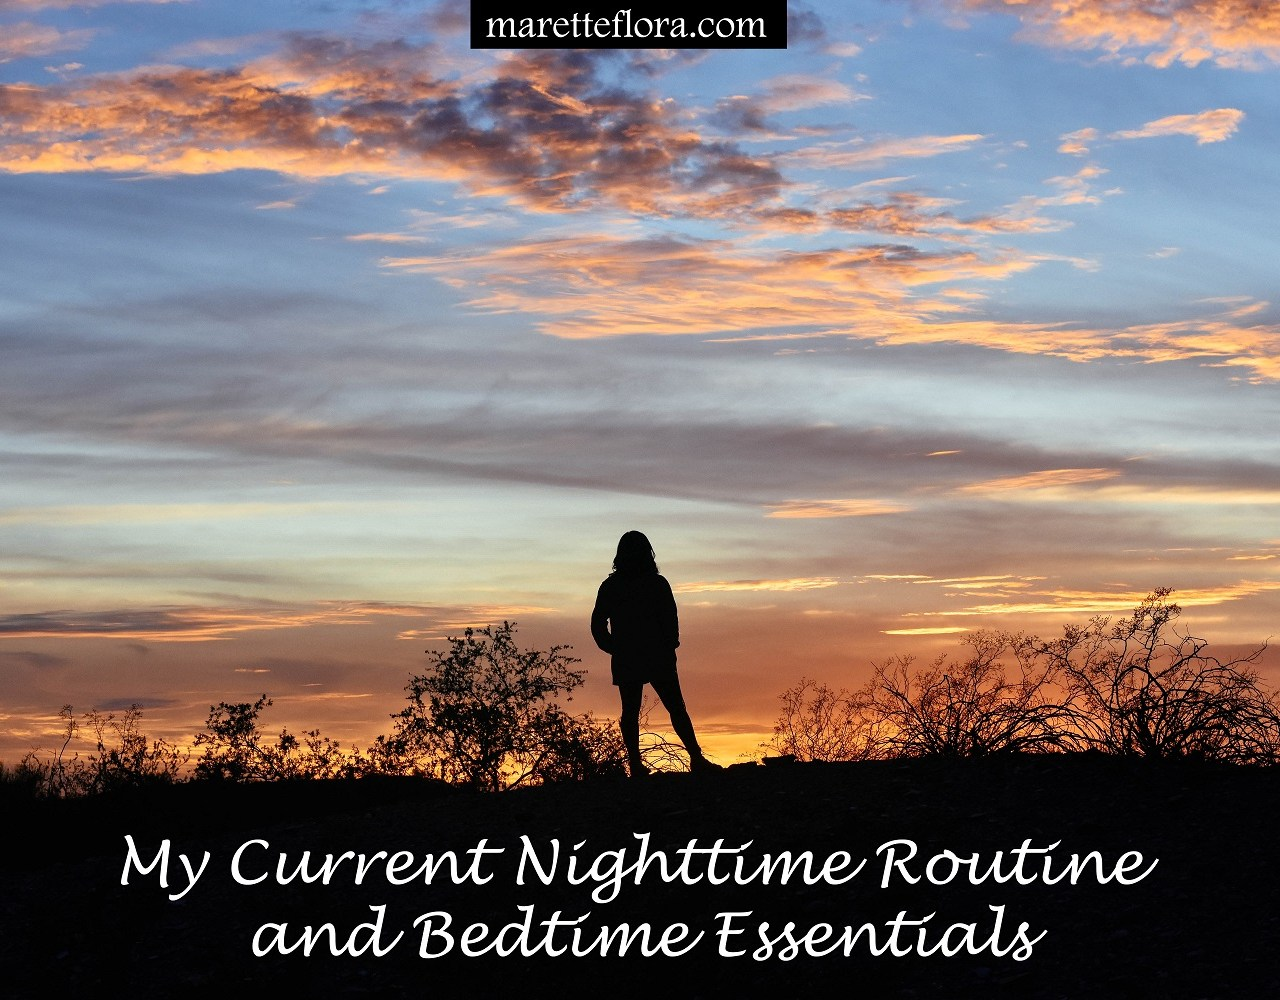 Nighttime Routine and Bedtime Essentials